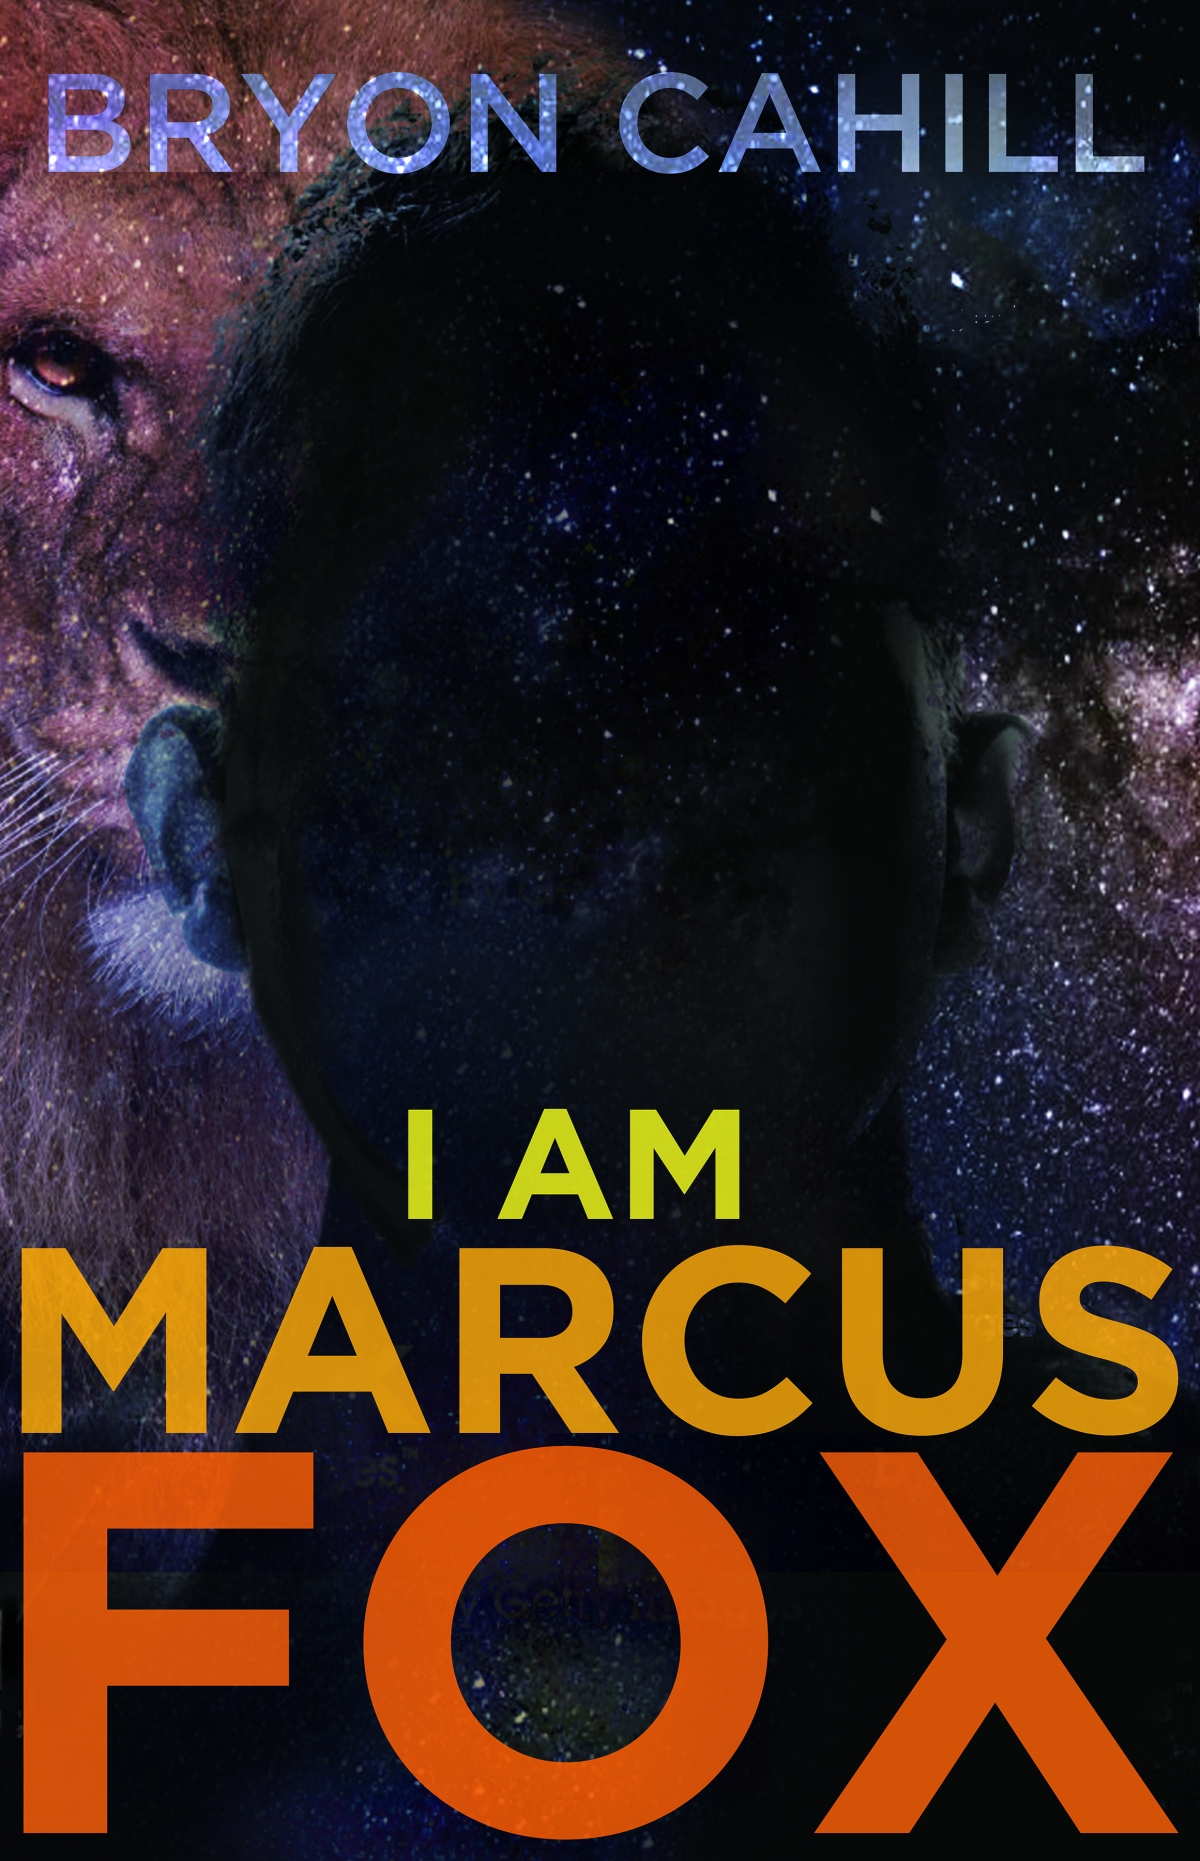 I Am Marcus Fox by Bryon Cahill Review